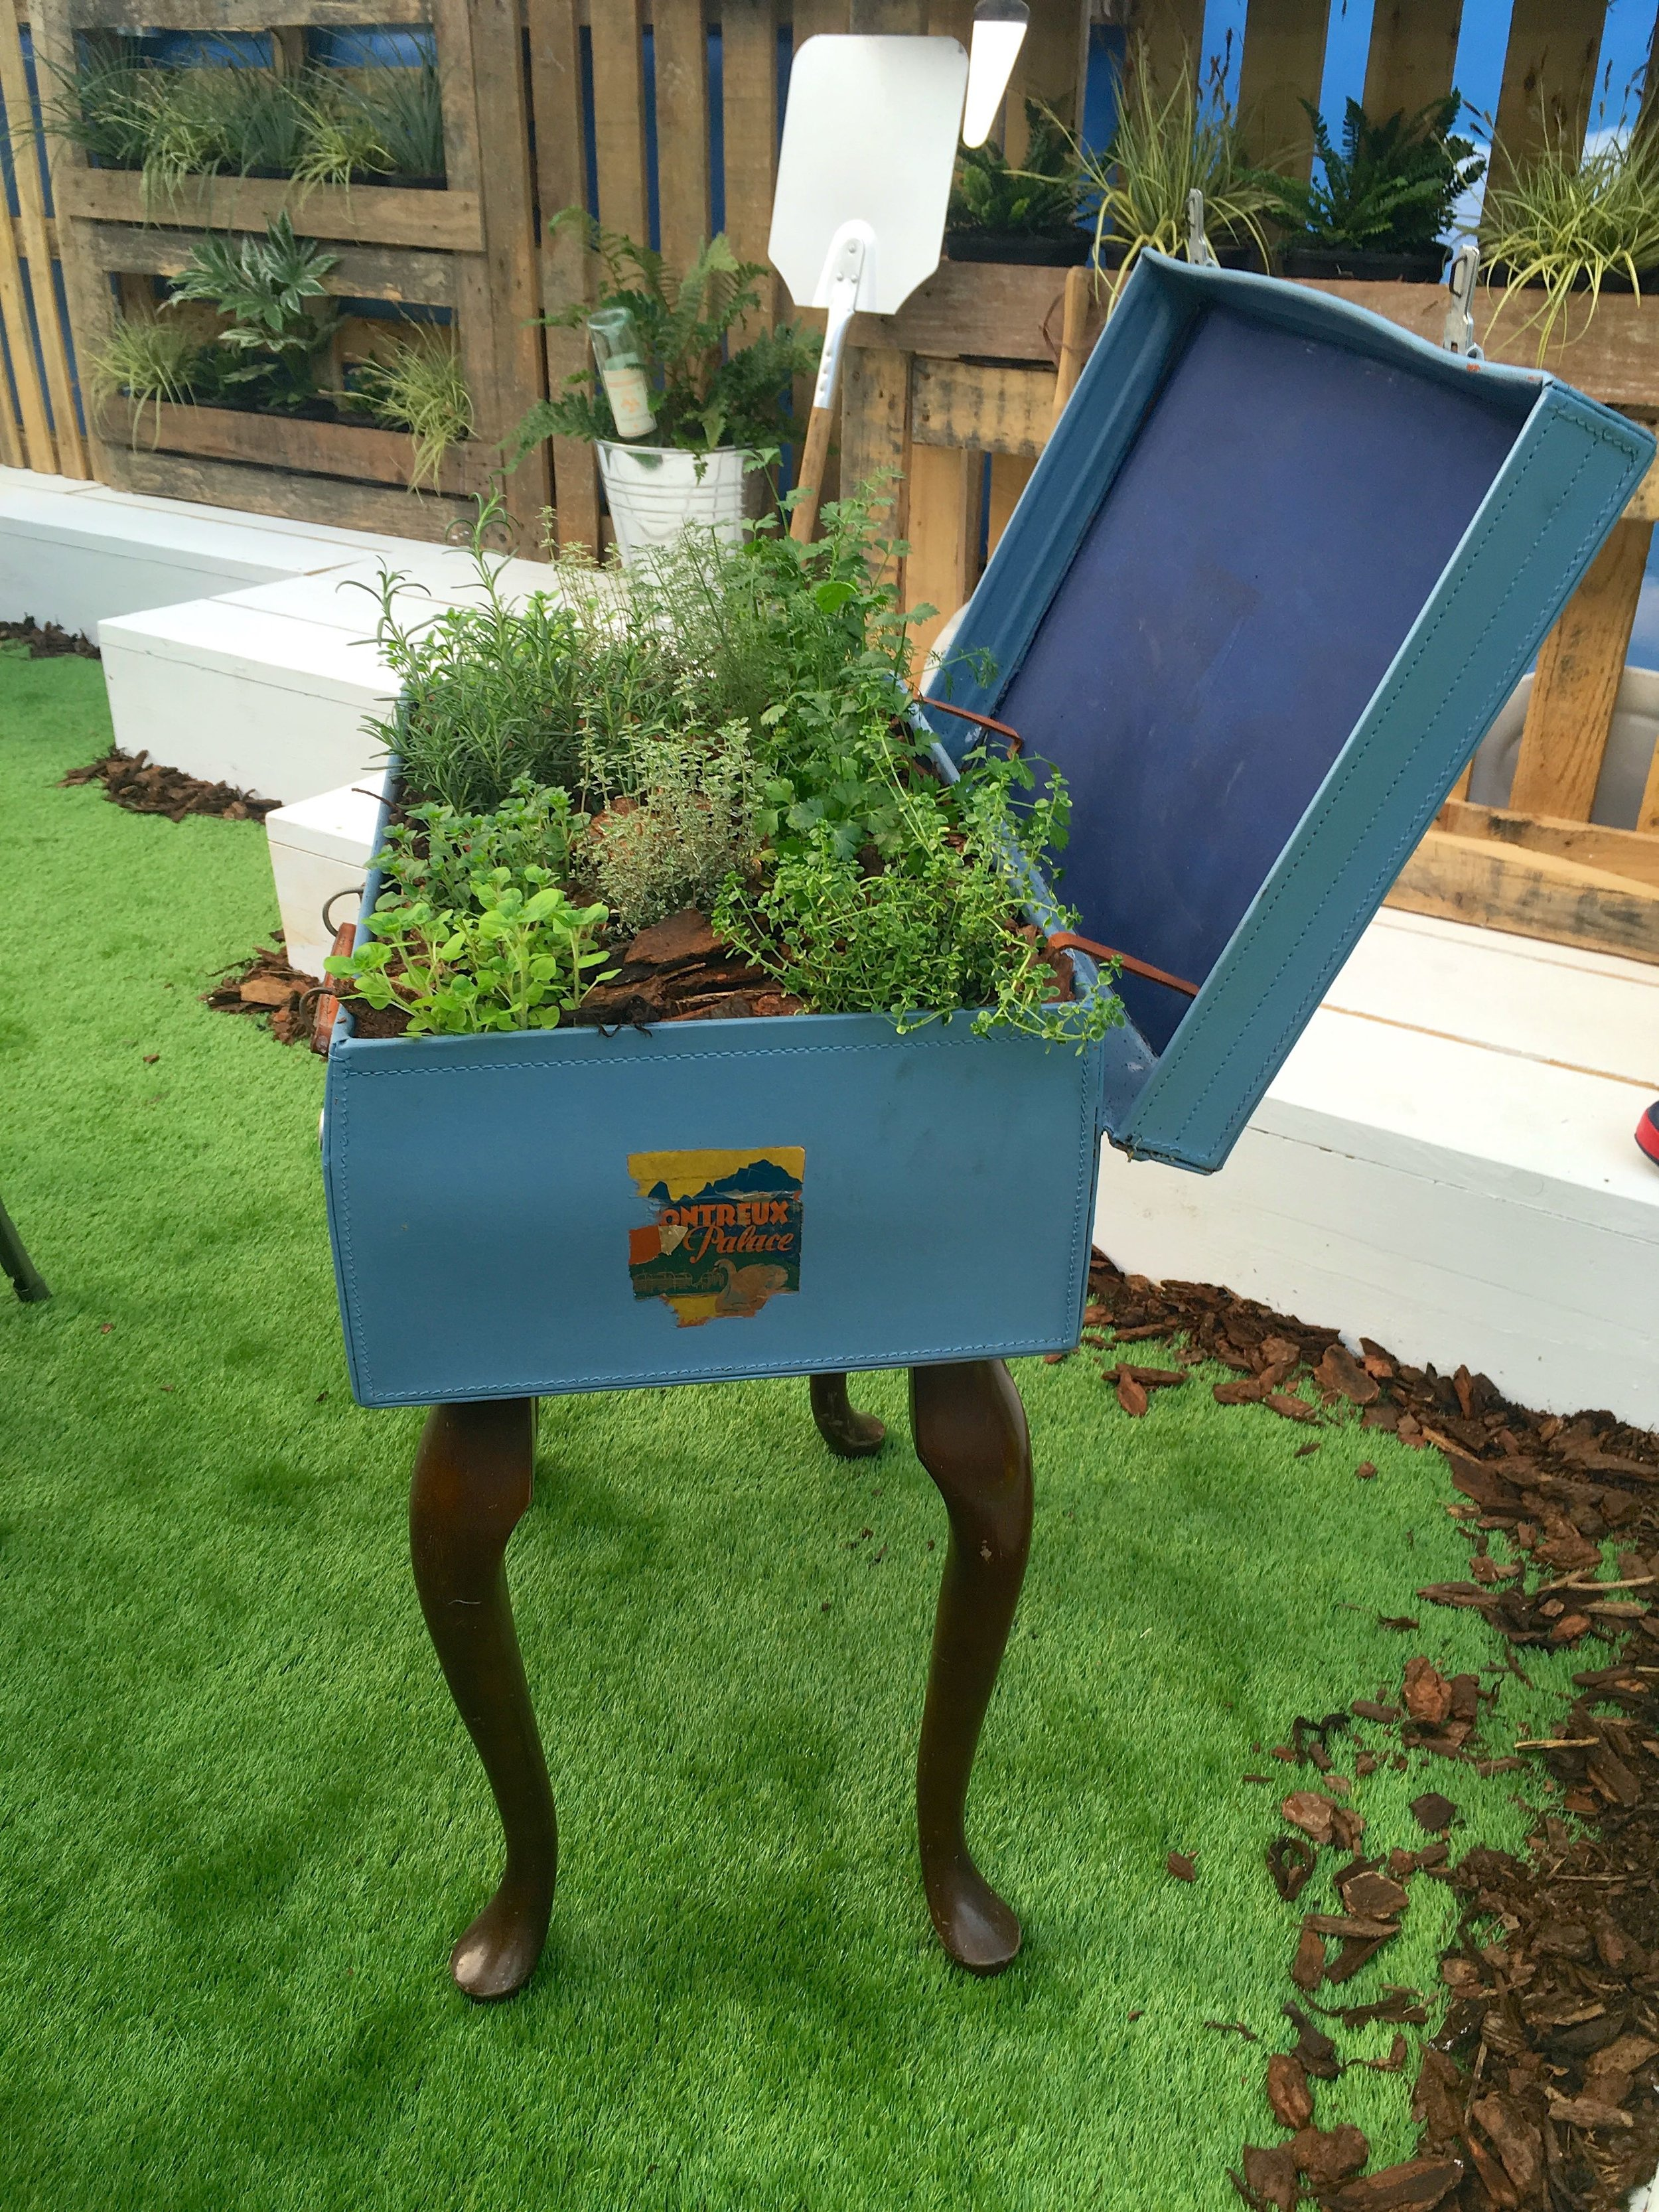 A suitcase planter on legs at the Ideal Home Show